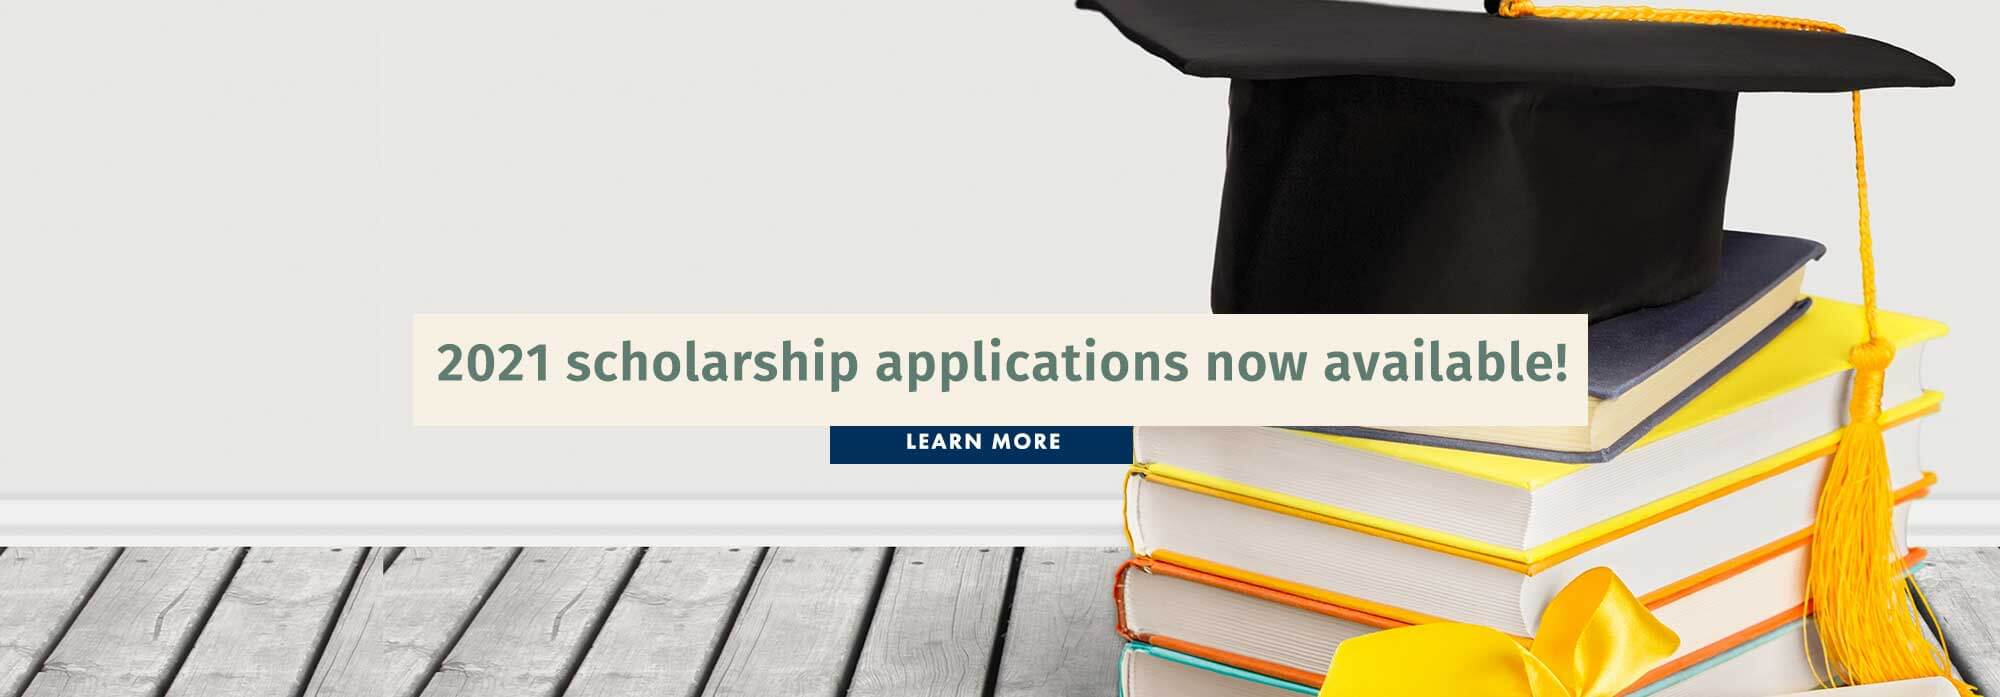 2021 Scholarship Applications Now Available!